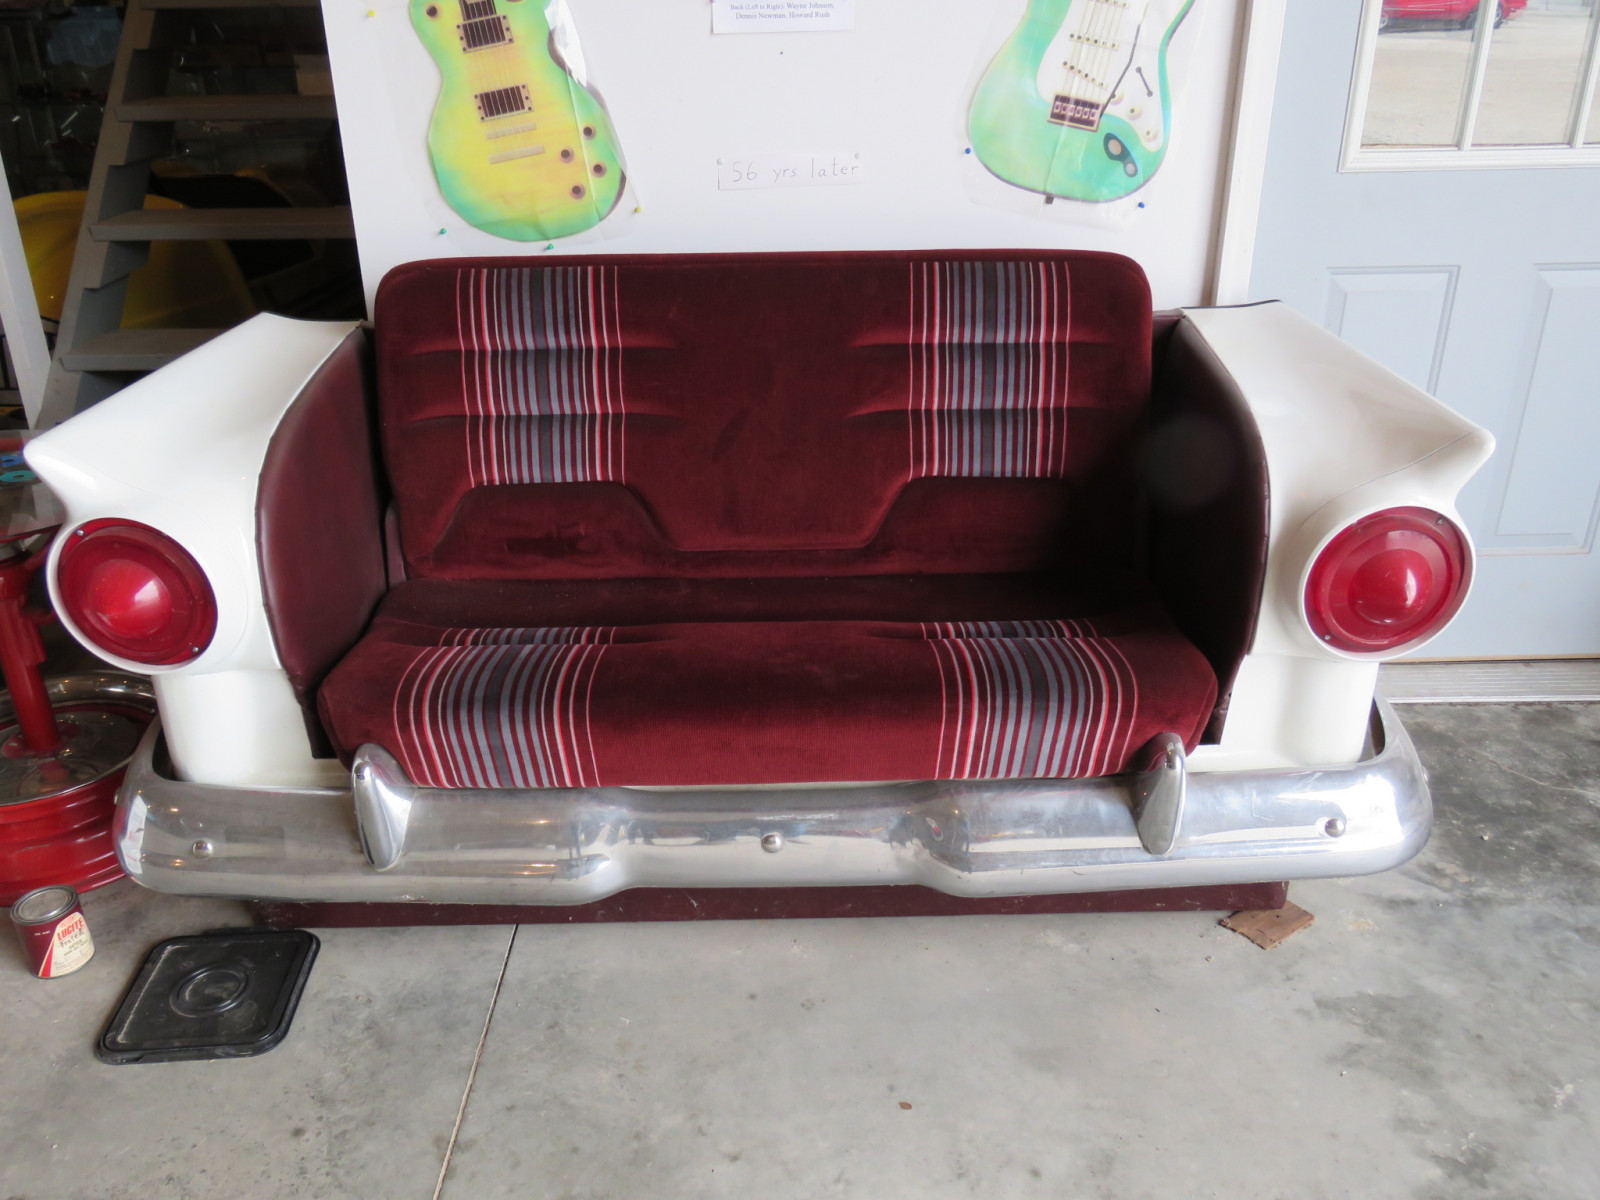 1957 Ford Fiberglass Couch - Image 1